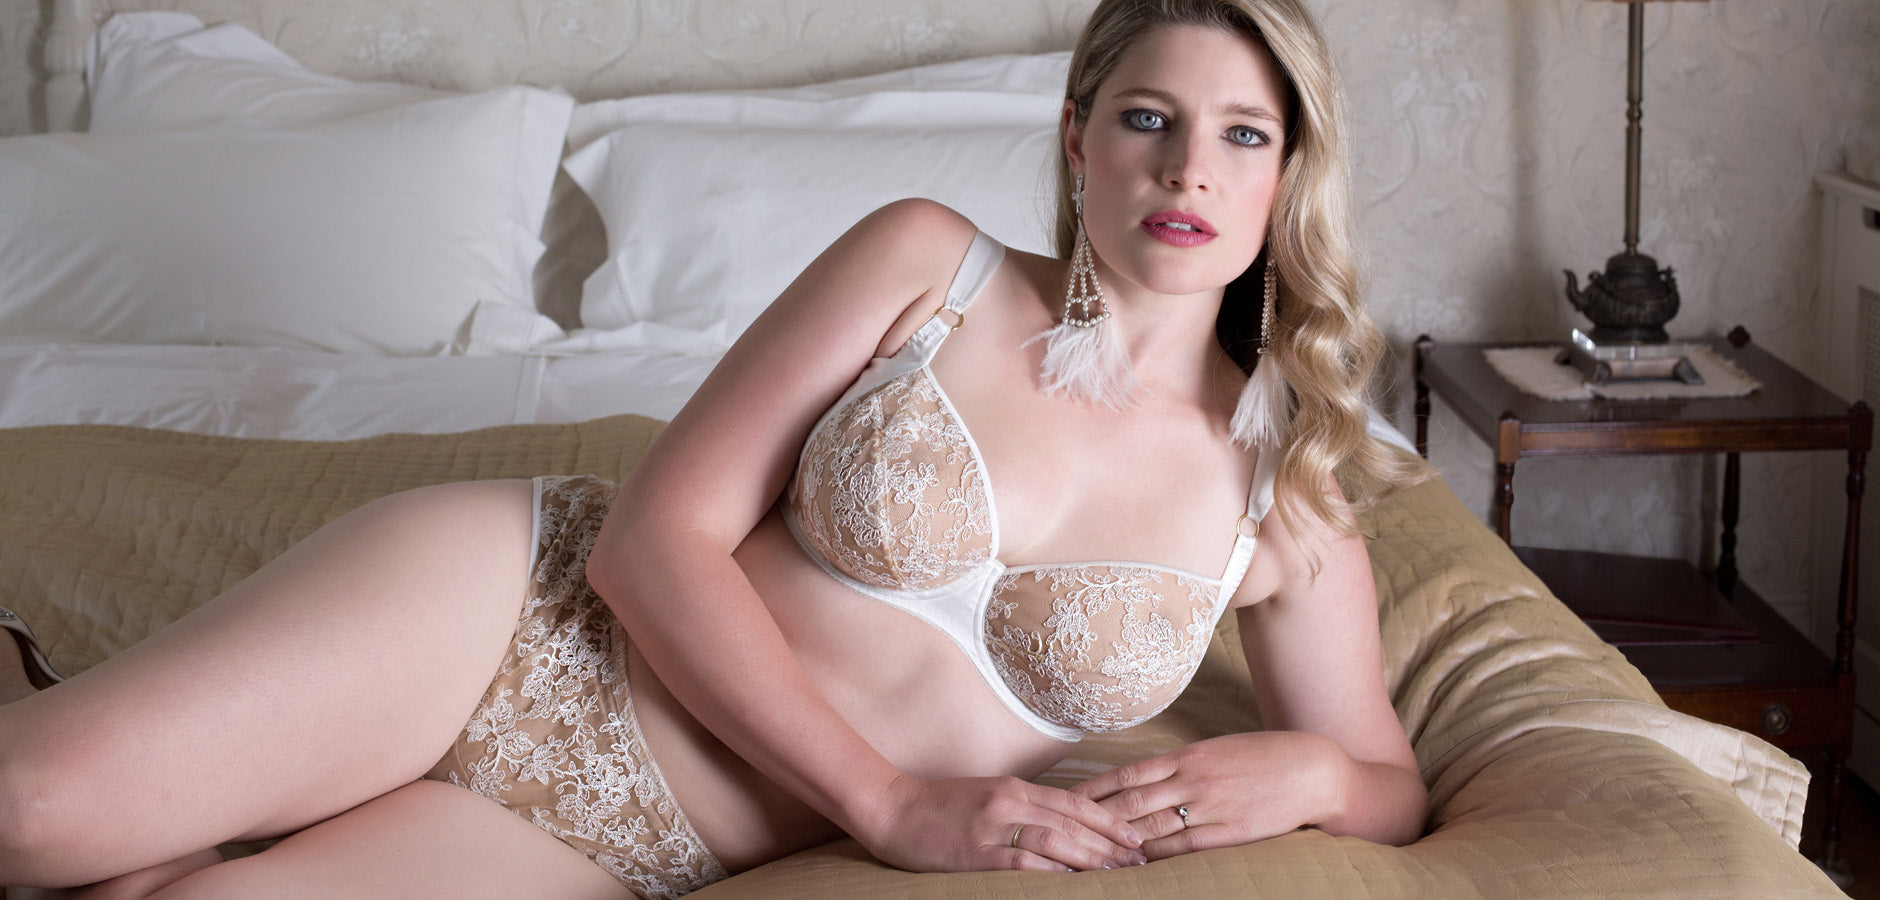 FF bra size lingerie, in ivory silk and embroidery